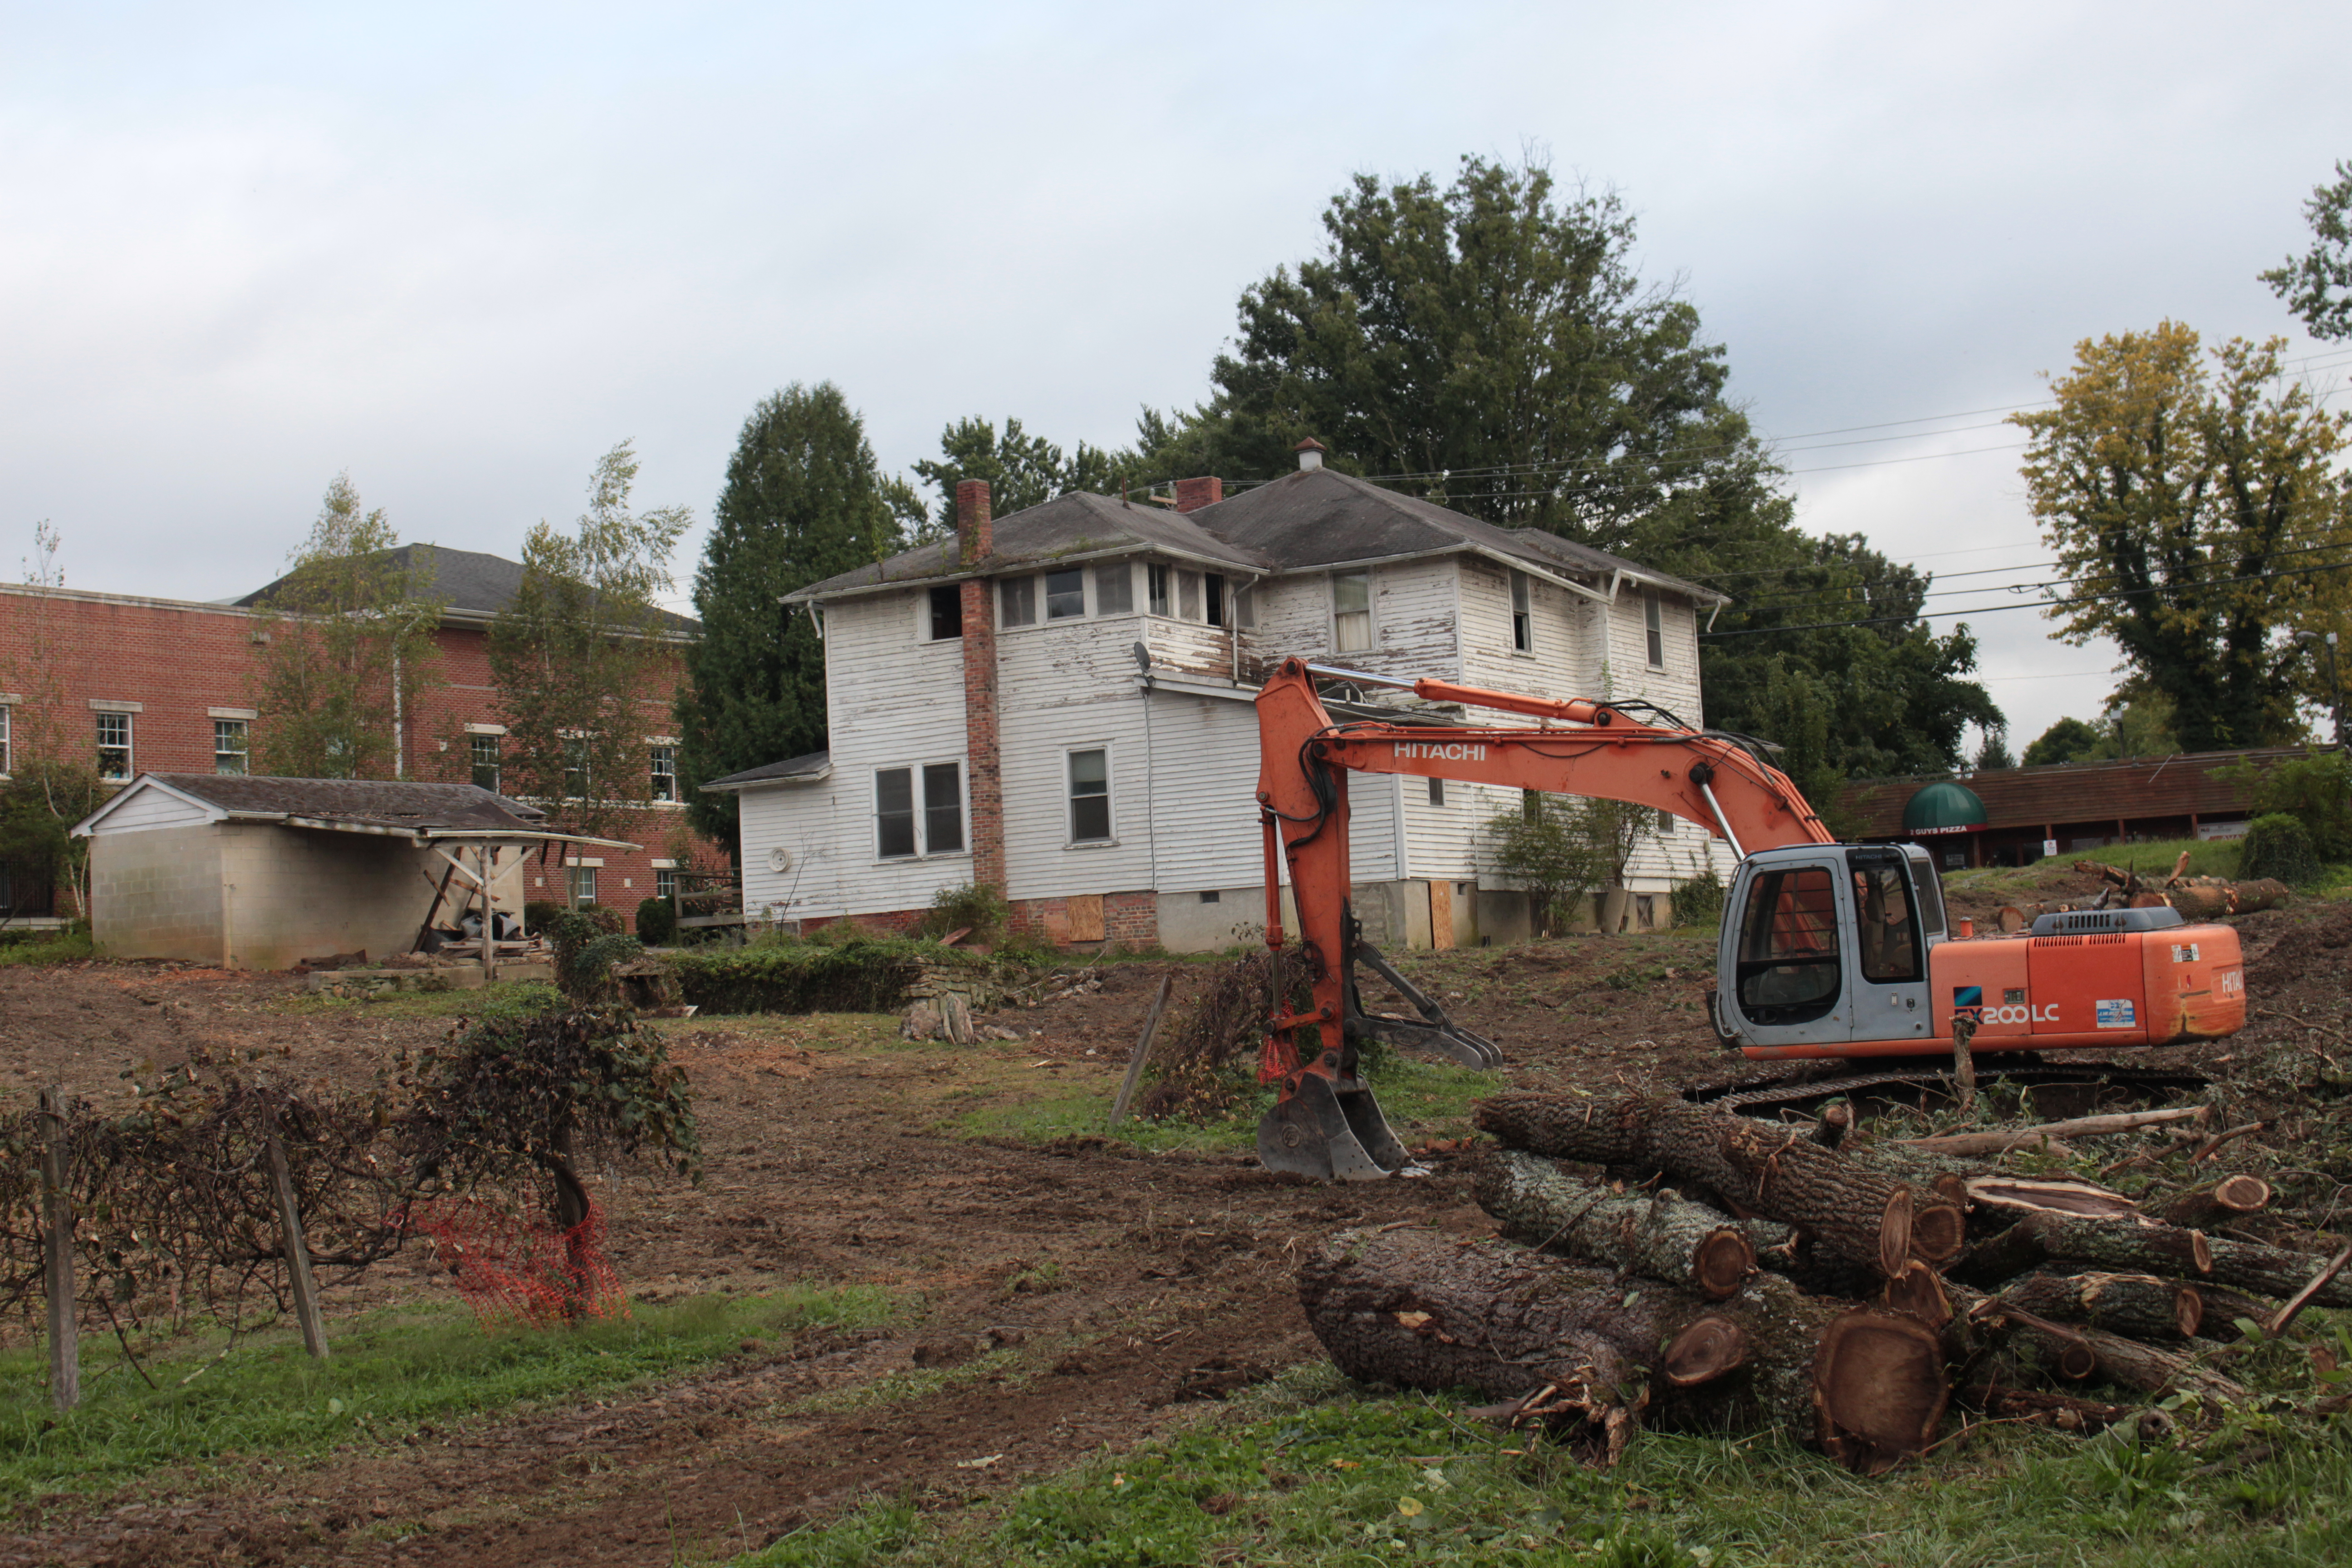 Lot clearing is under way for the new health sciences building on Sixth Avenue at Oak Street.